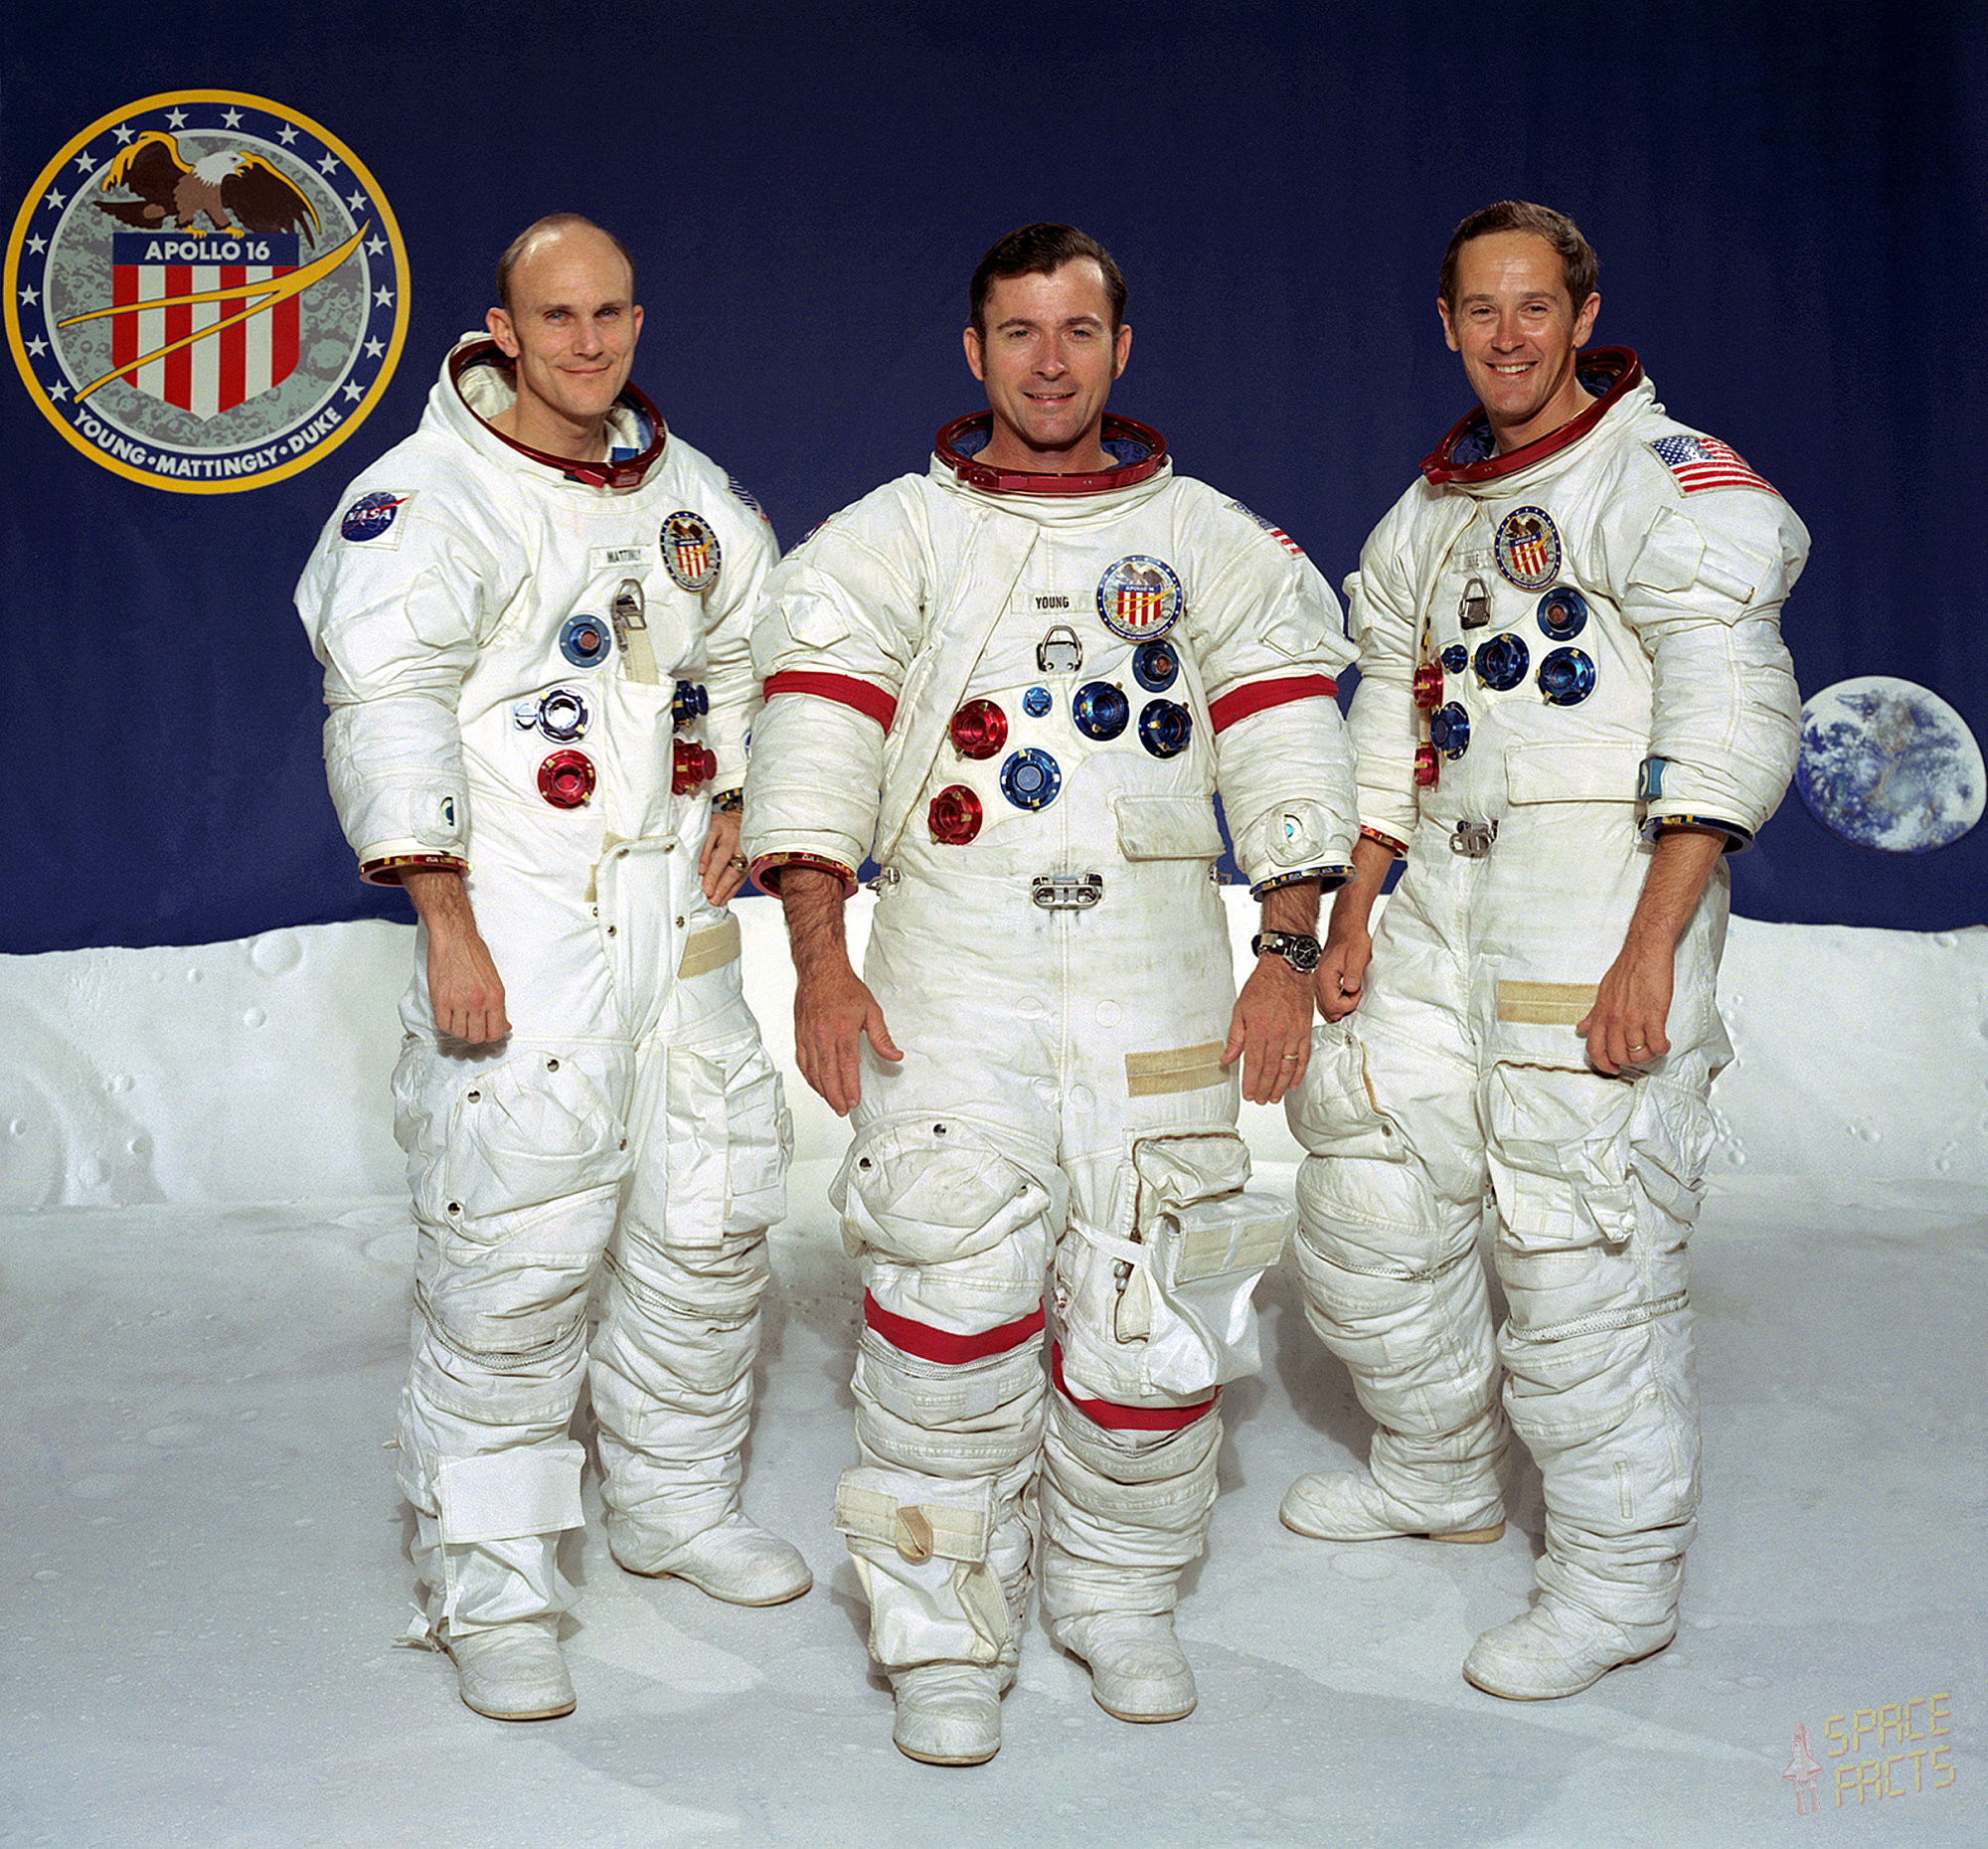 apollo space crews - photo #1